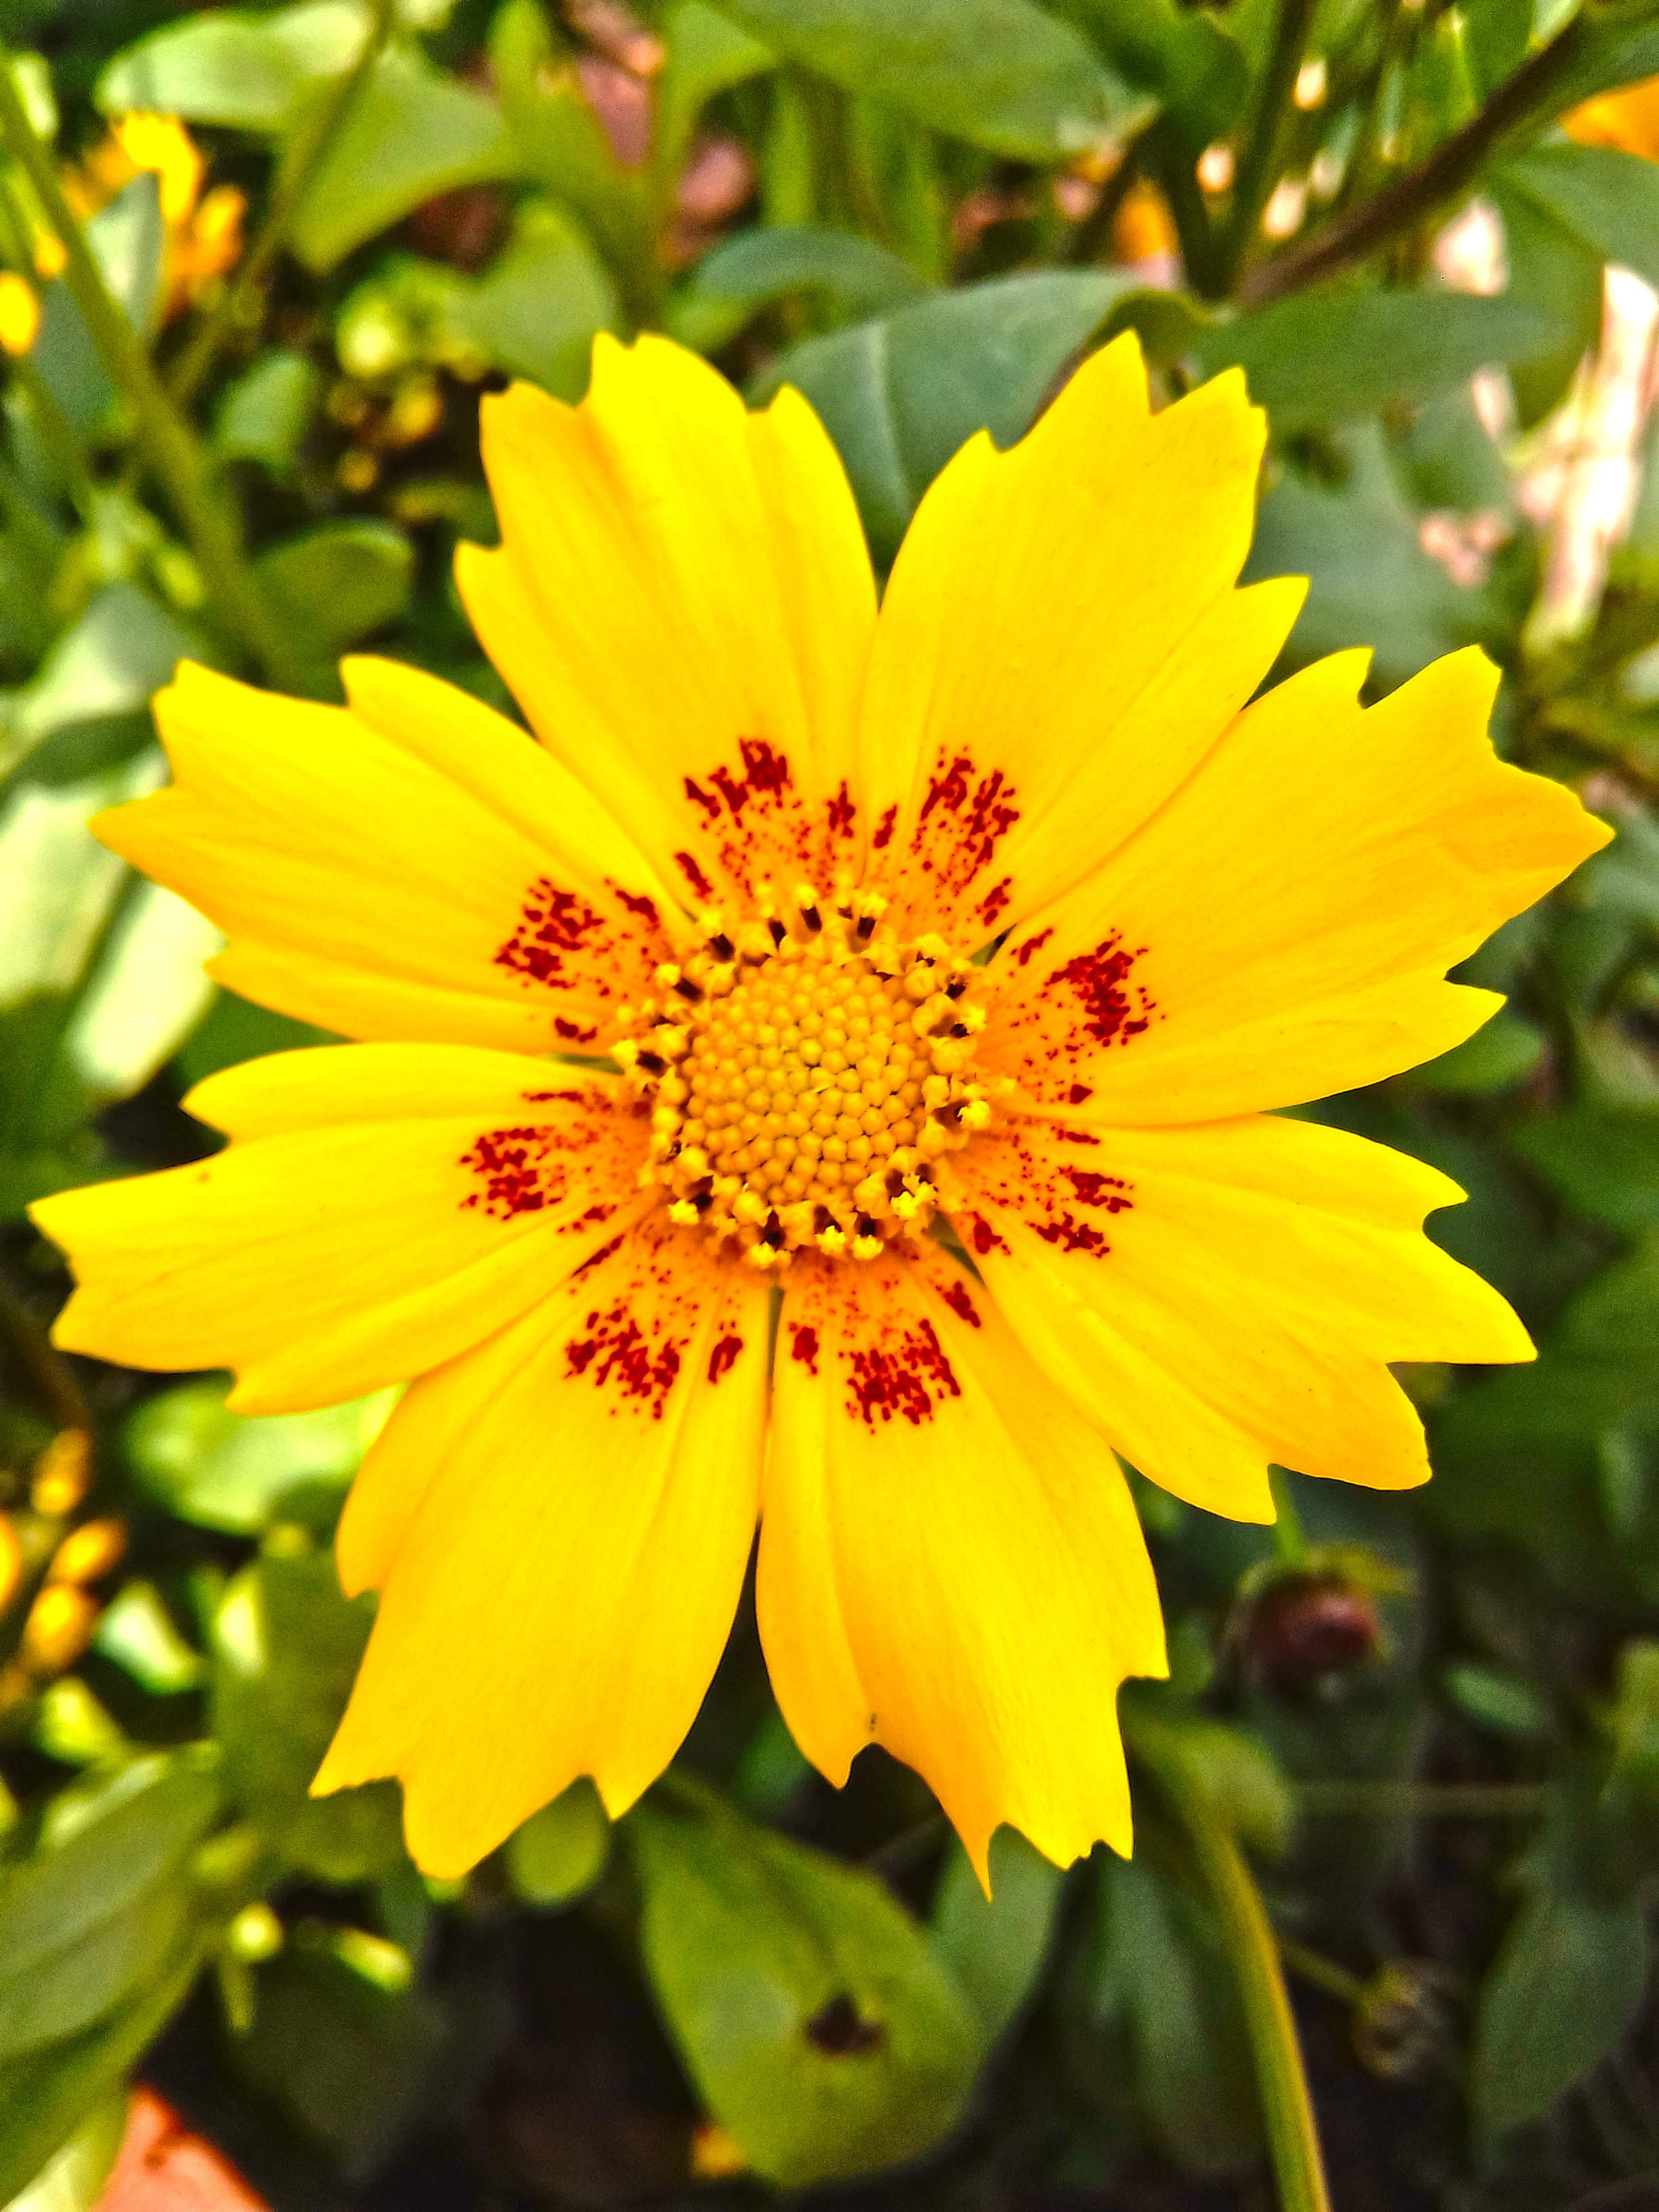 find here Yellow Flower images